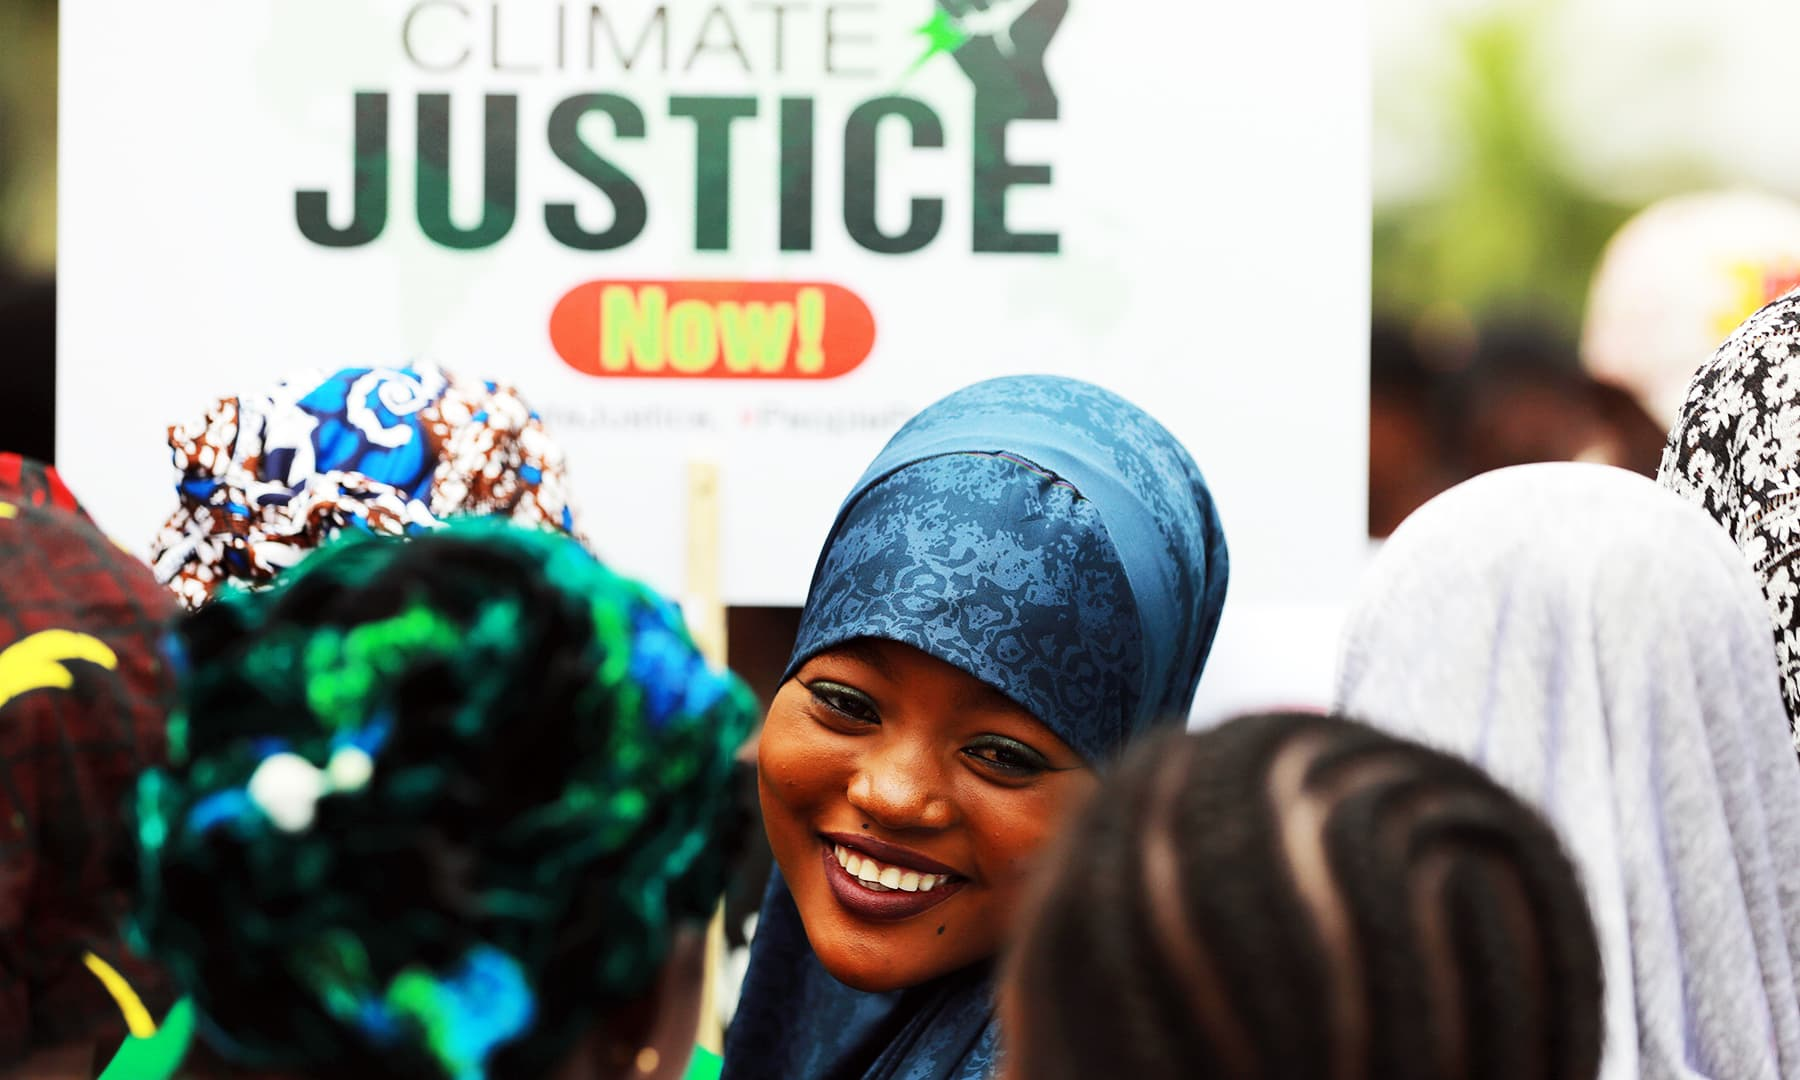 A protester smiles during a demonstration for climate protection in Abuja, Nigeria September 20, 2019. — Reuters